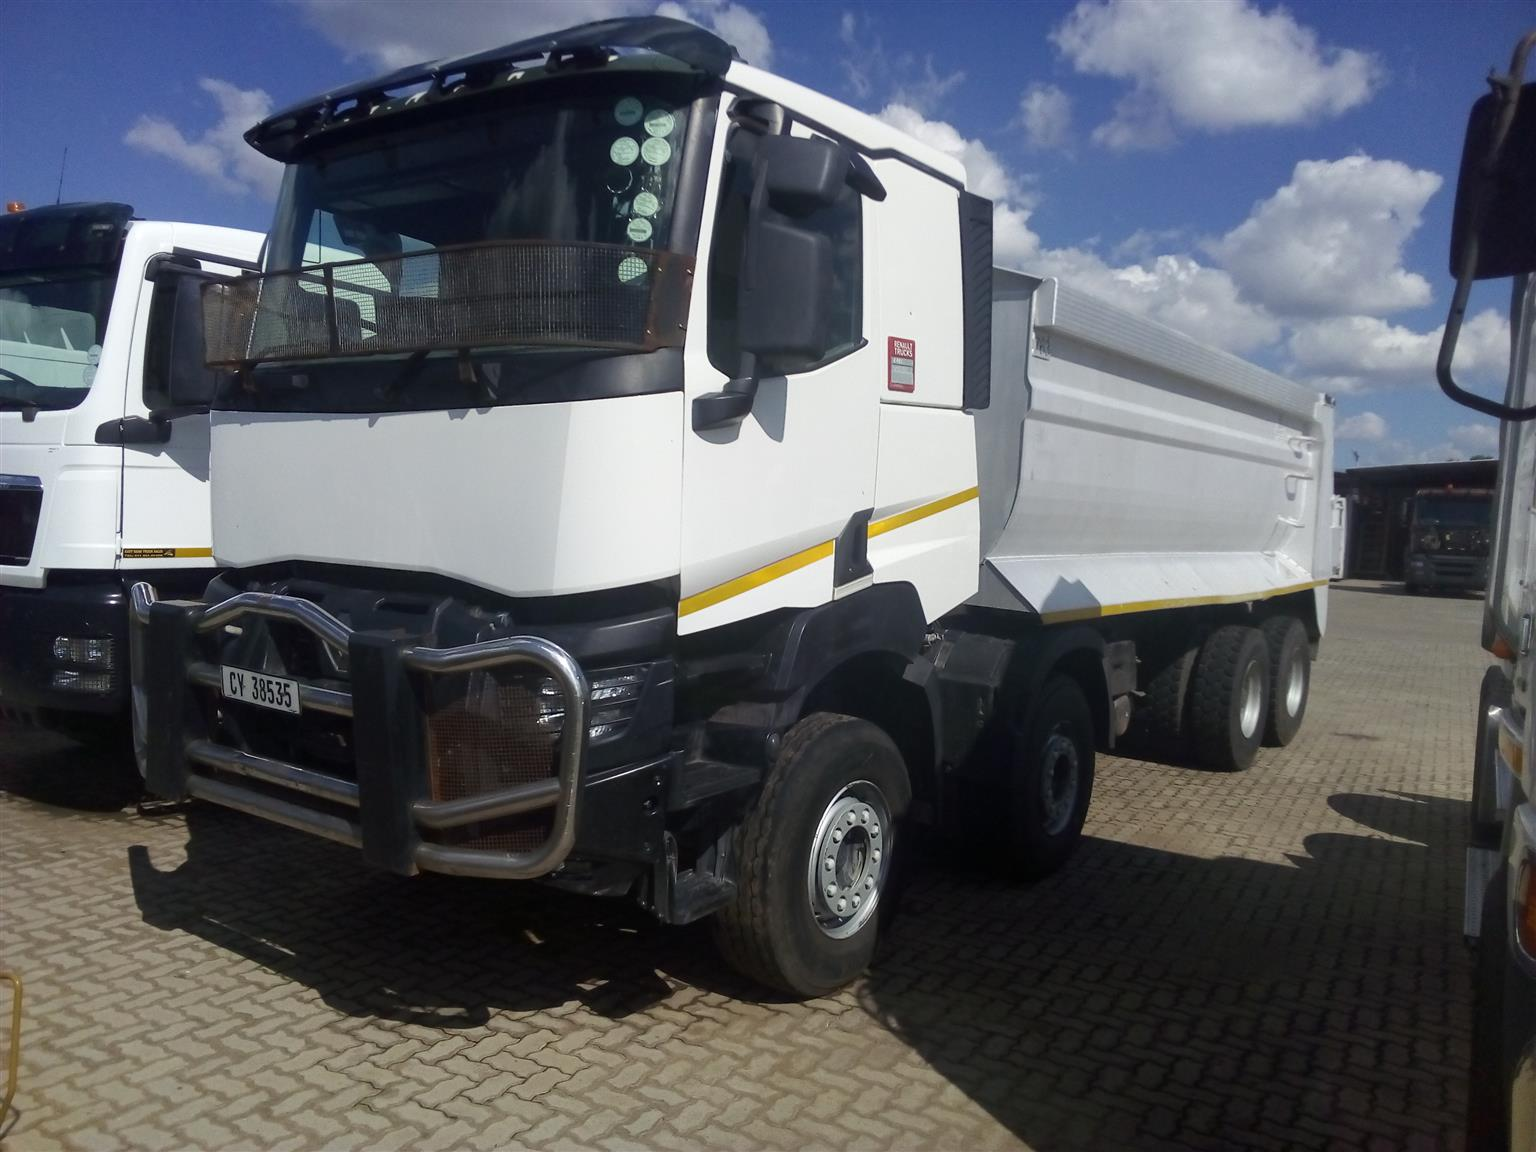 Excellent Renault 20m3 Construction trucks. Be first!